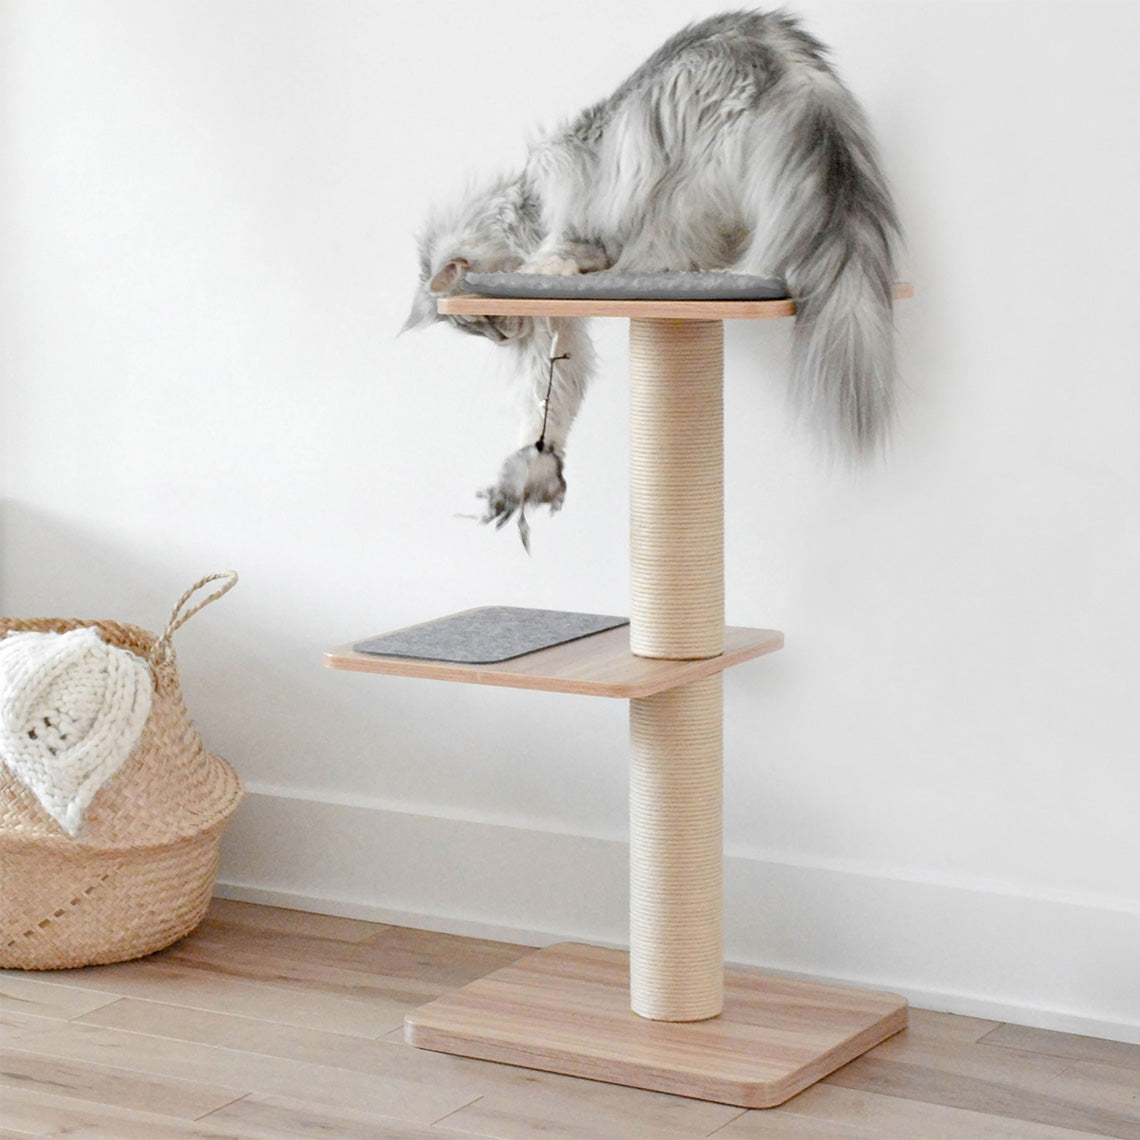 Beonebreed Cat Katt3 Evo Natural Cat Tree Only Natural Pet